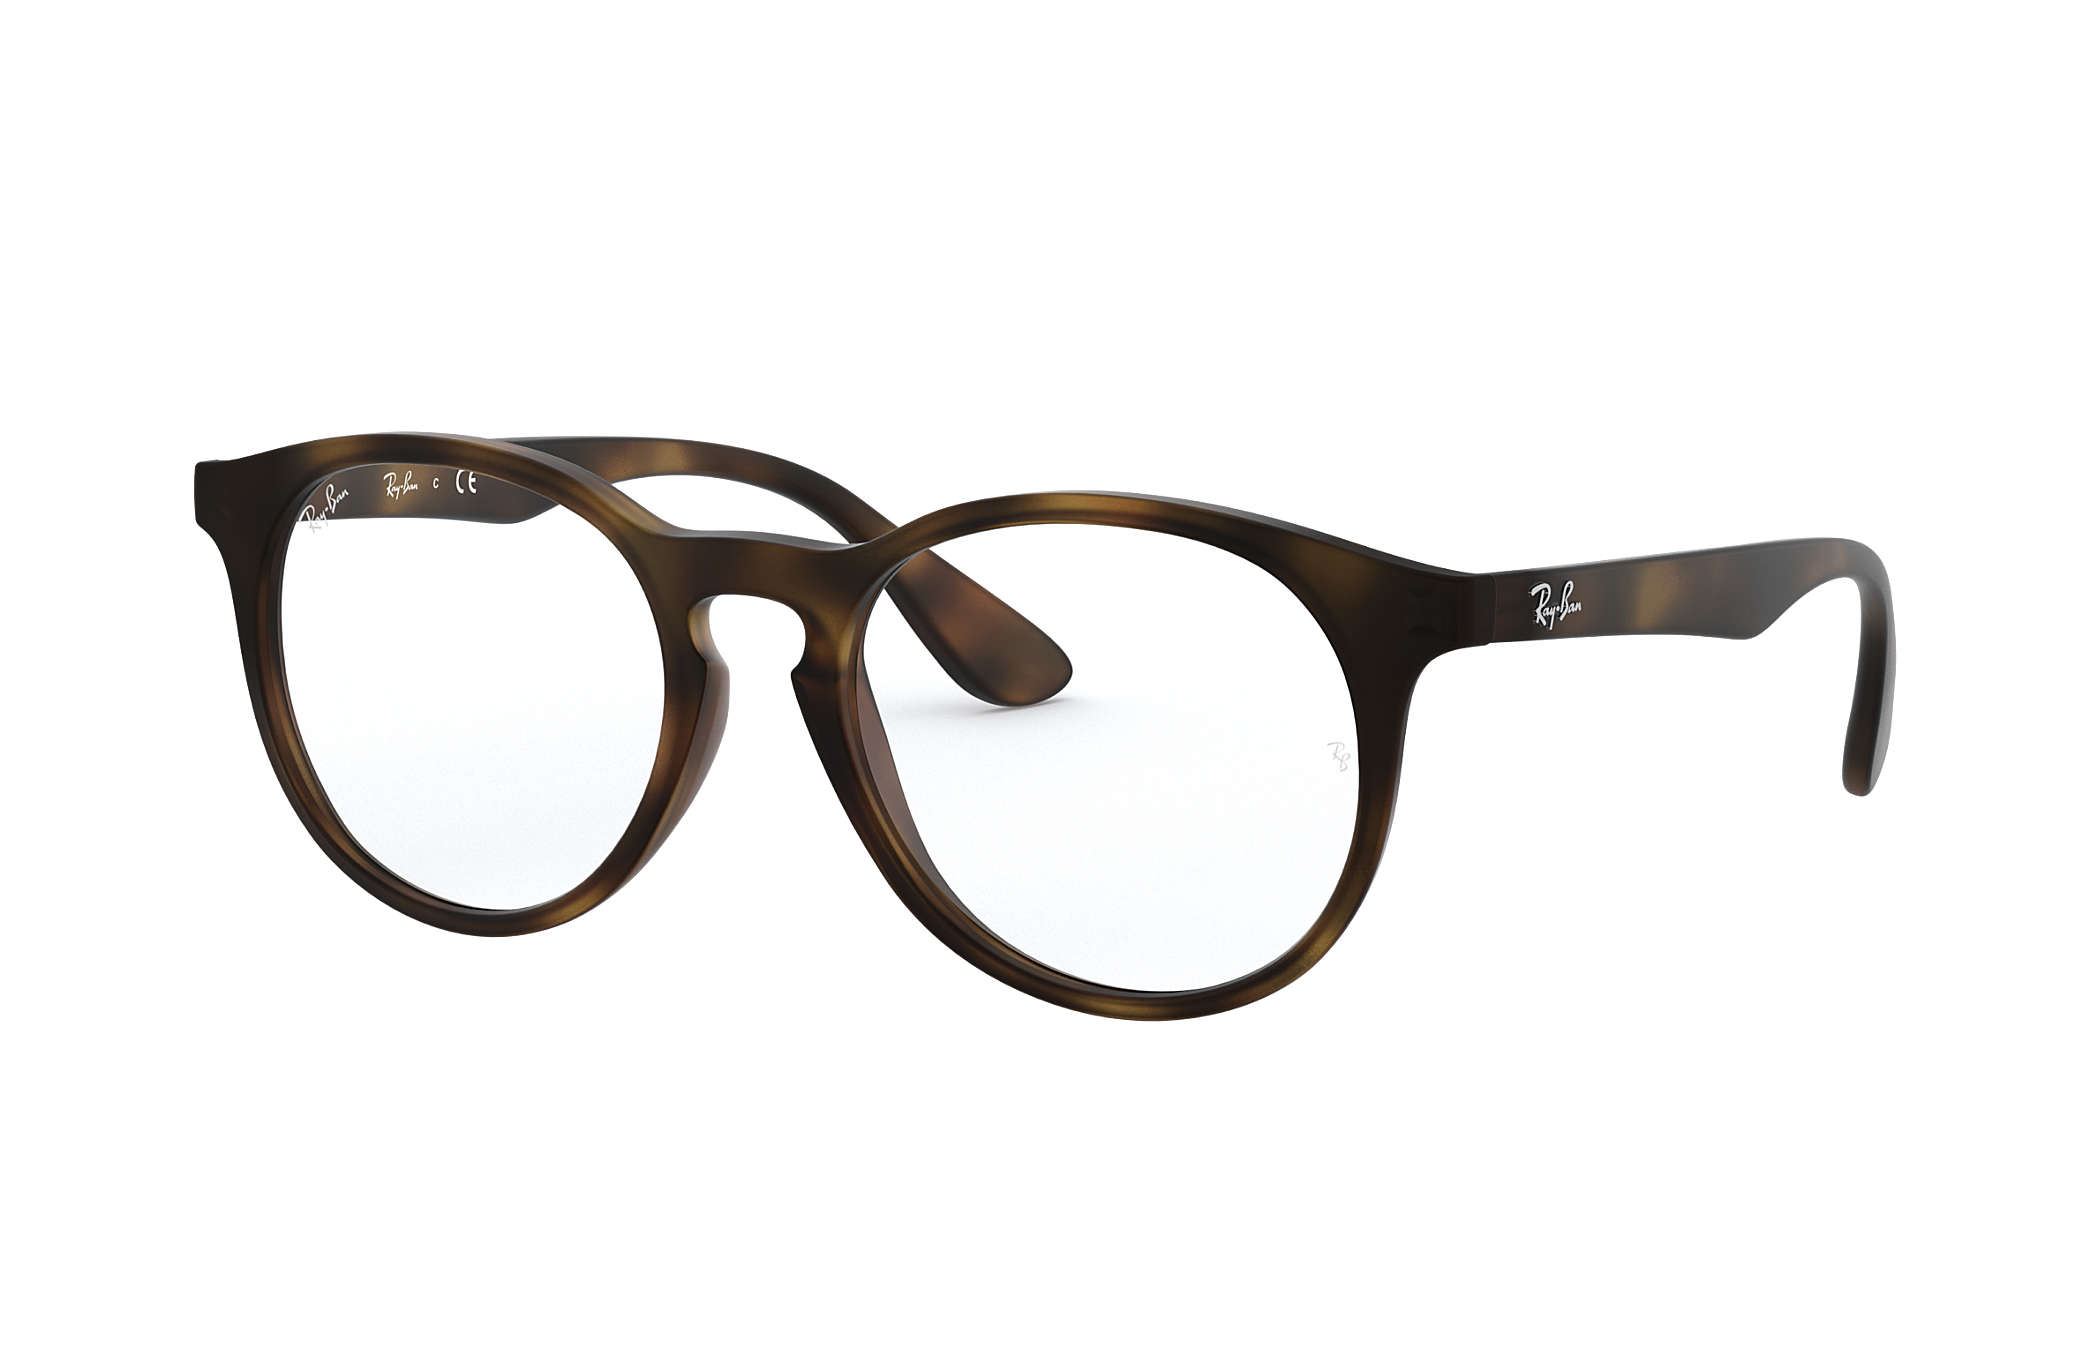 747ad2e672 Lunettes de vue Ray-Ban RY1554 Havane - Injected - 0RY1554361646 ...